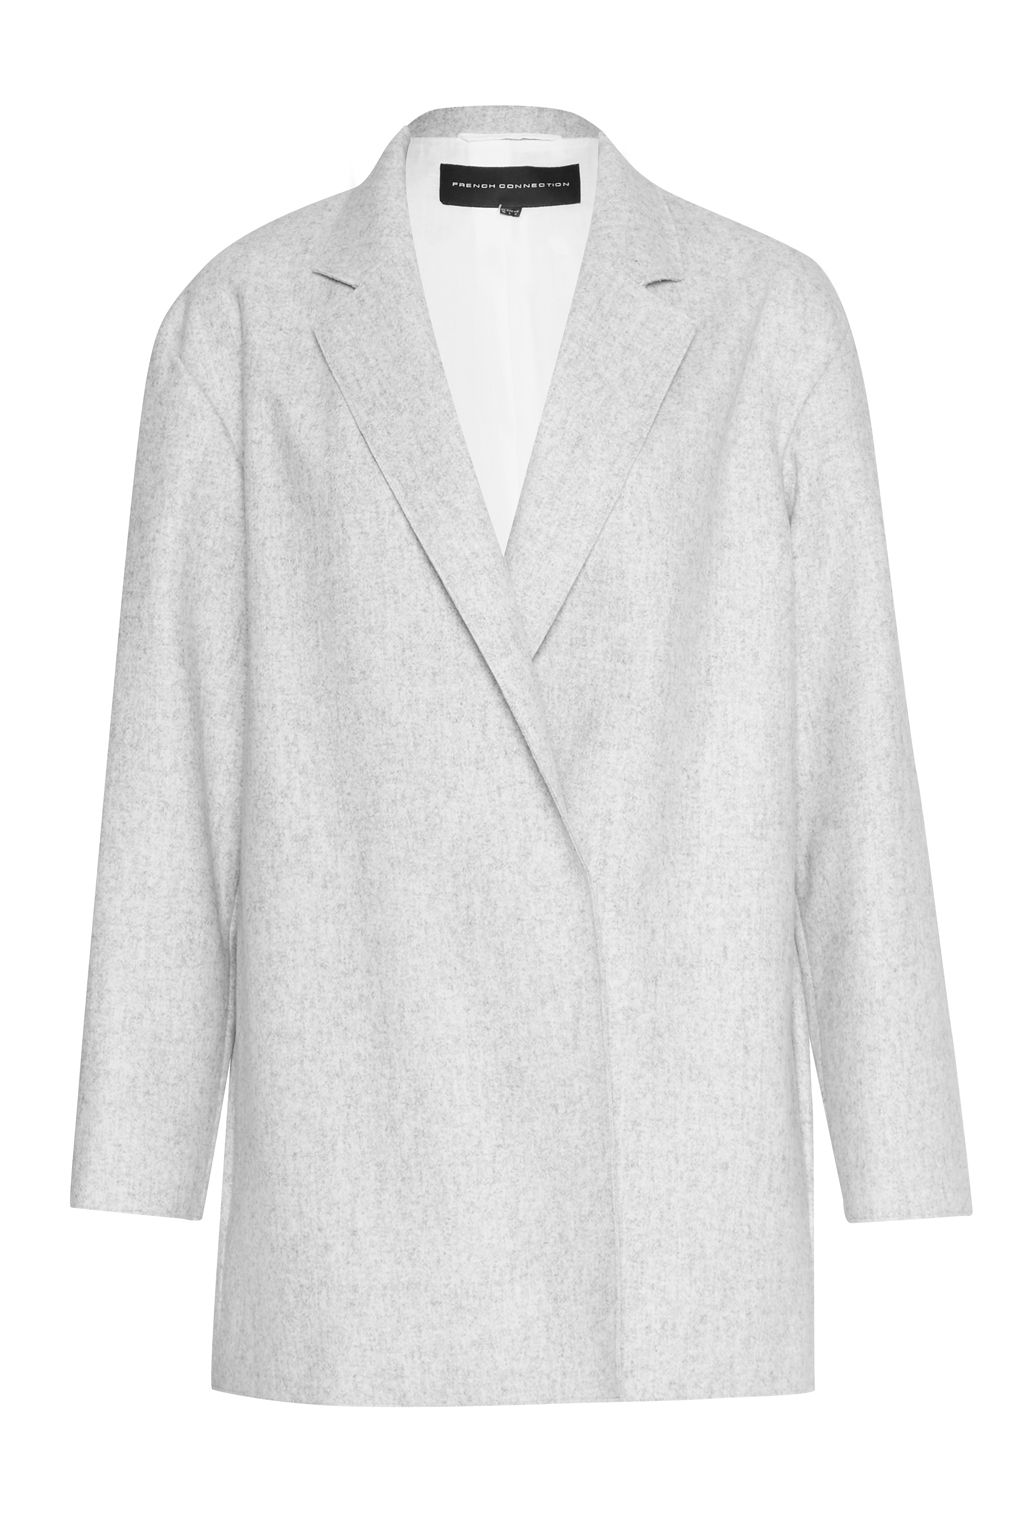 French Connection Platform Oversized Coat, Charcoal